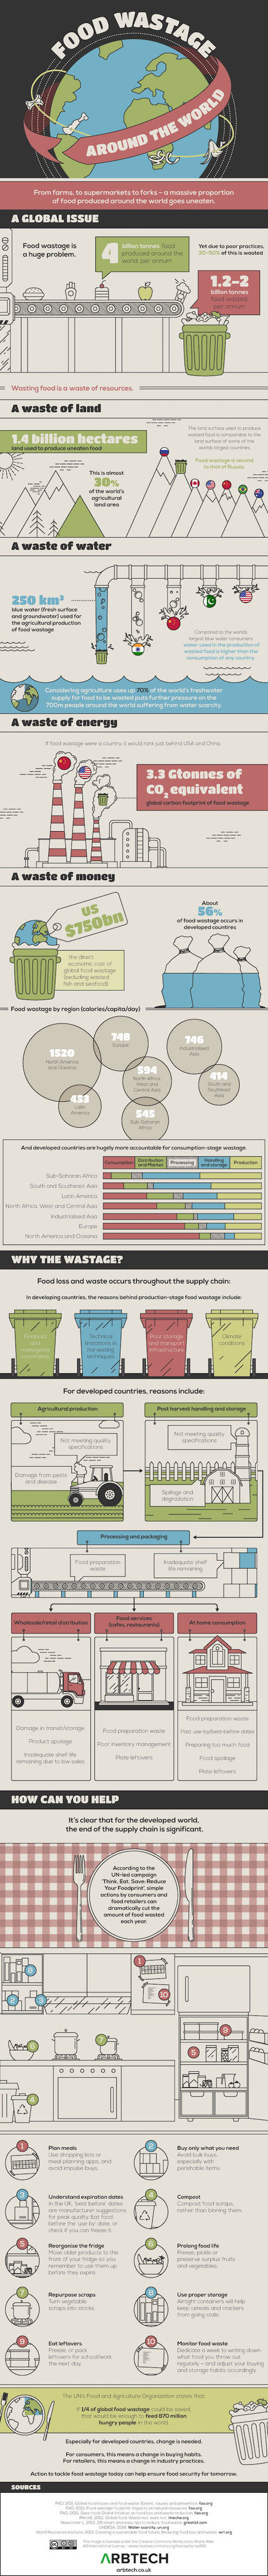 INFOGRAPHIC: How food waste has become a huge global problem | green infographics | Scoop.it